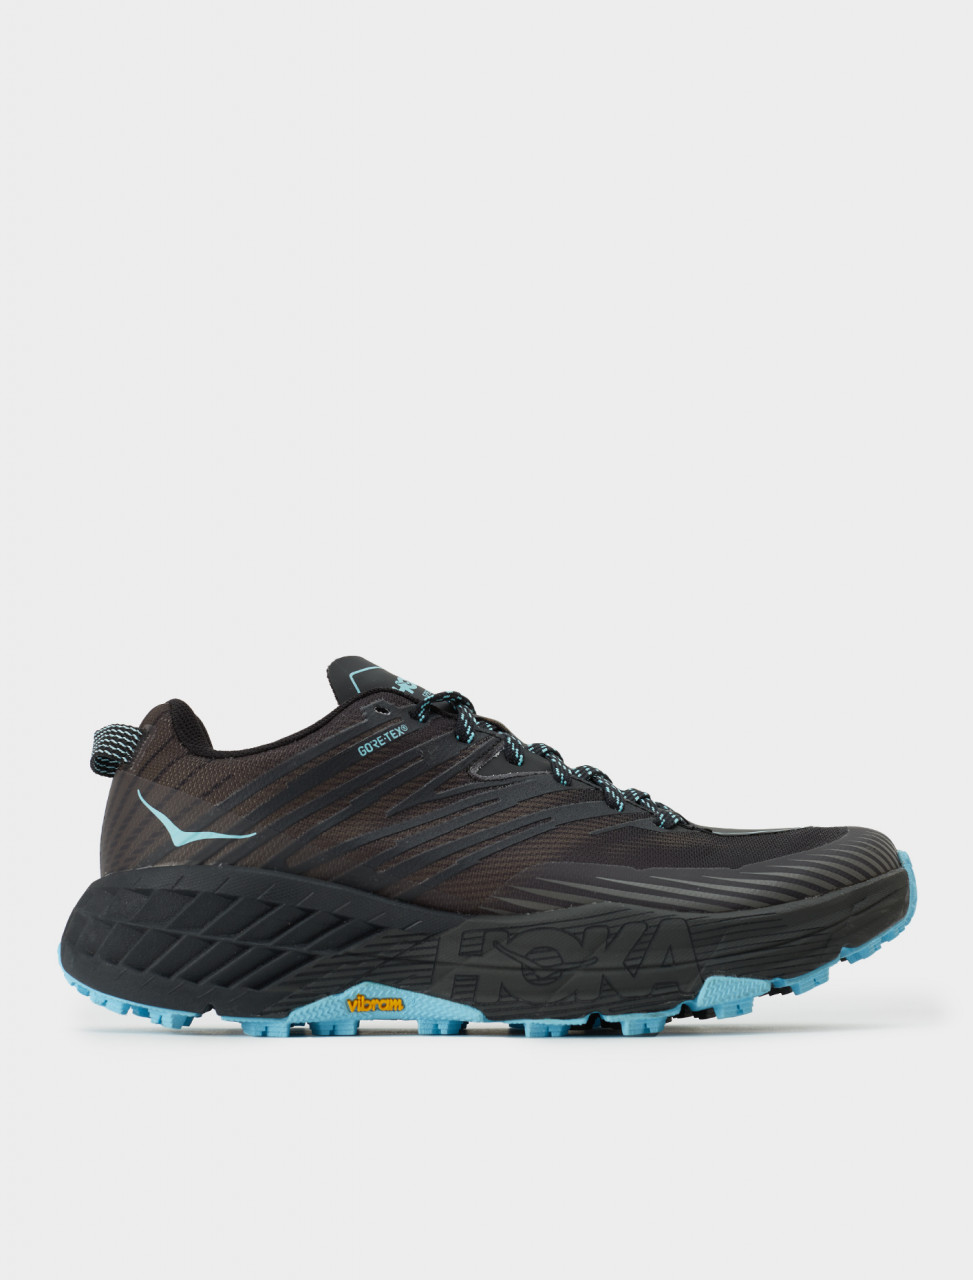 Hoka One One W SPEEDGOAT GTX Sneaker in Anthracite/Dark Gull Grey